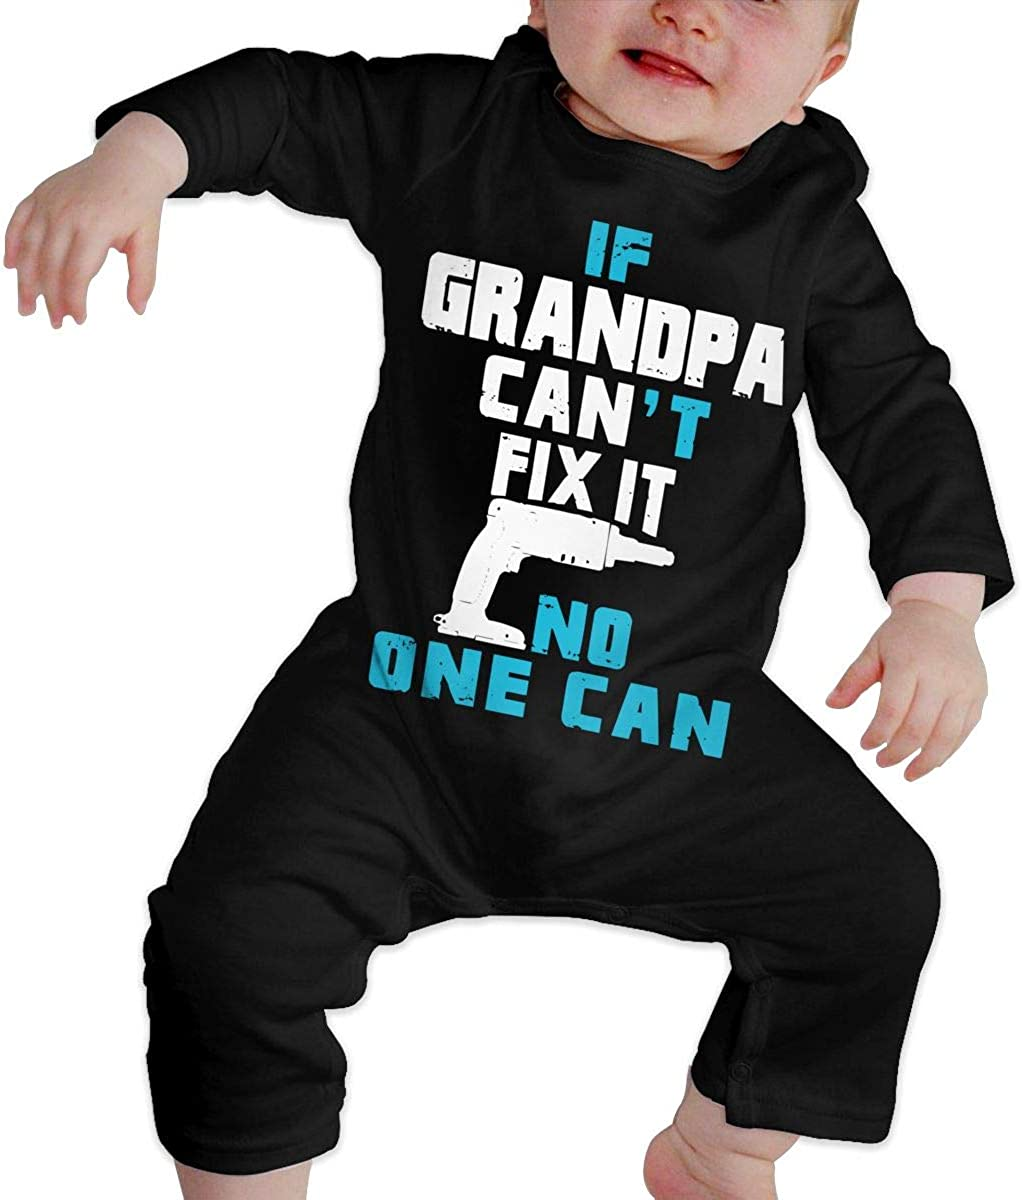 If Grandpa Cant Fix It No-one Can Printed Baby Boys Girls One-Piece Suit Long Sleeve Outfits Black